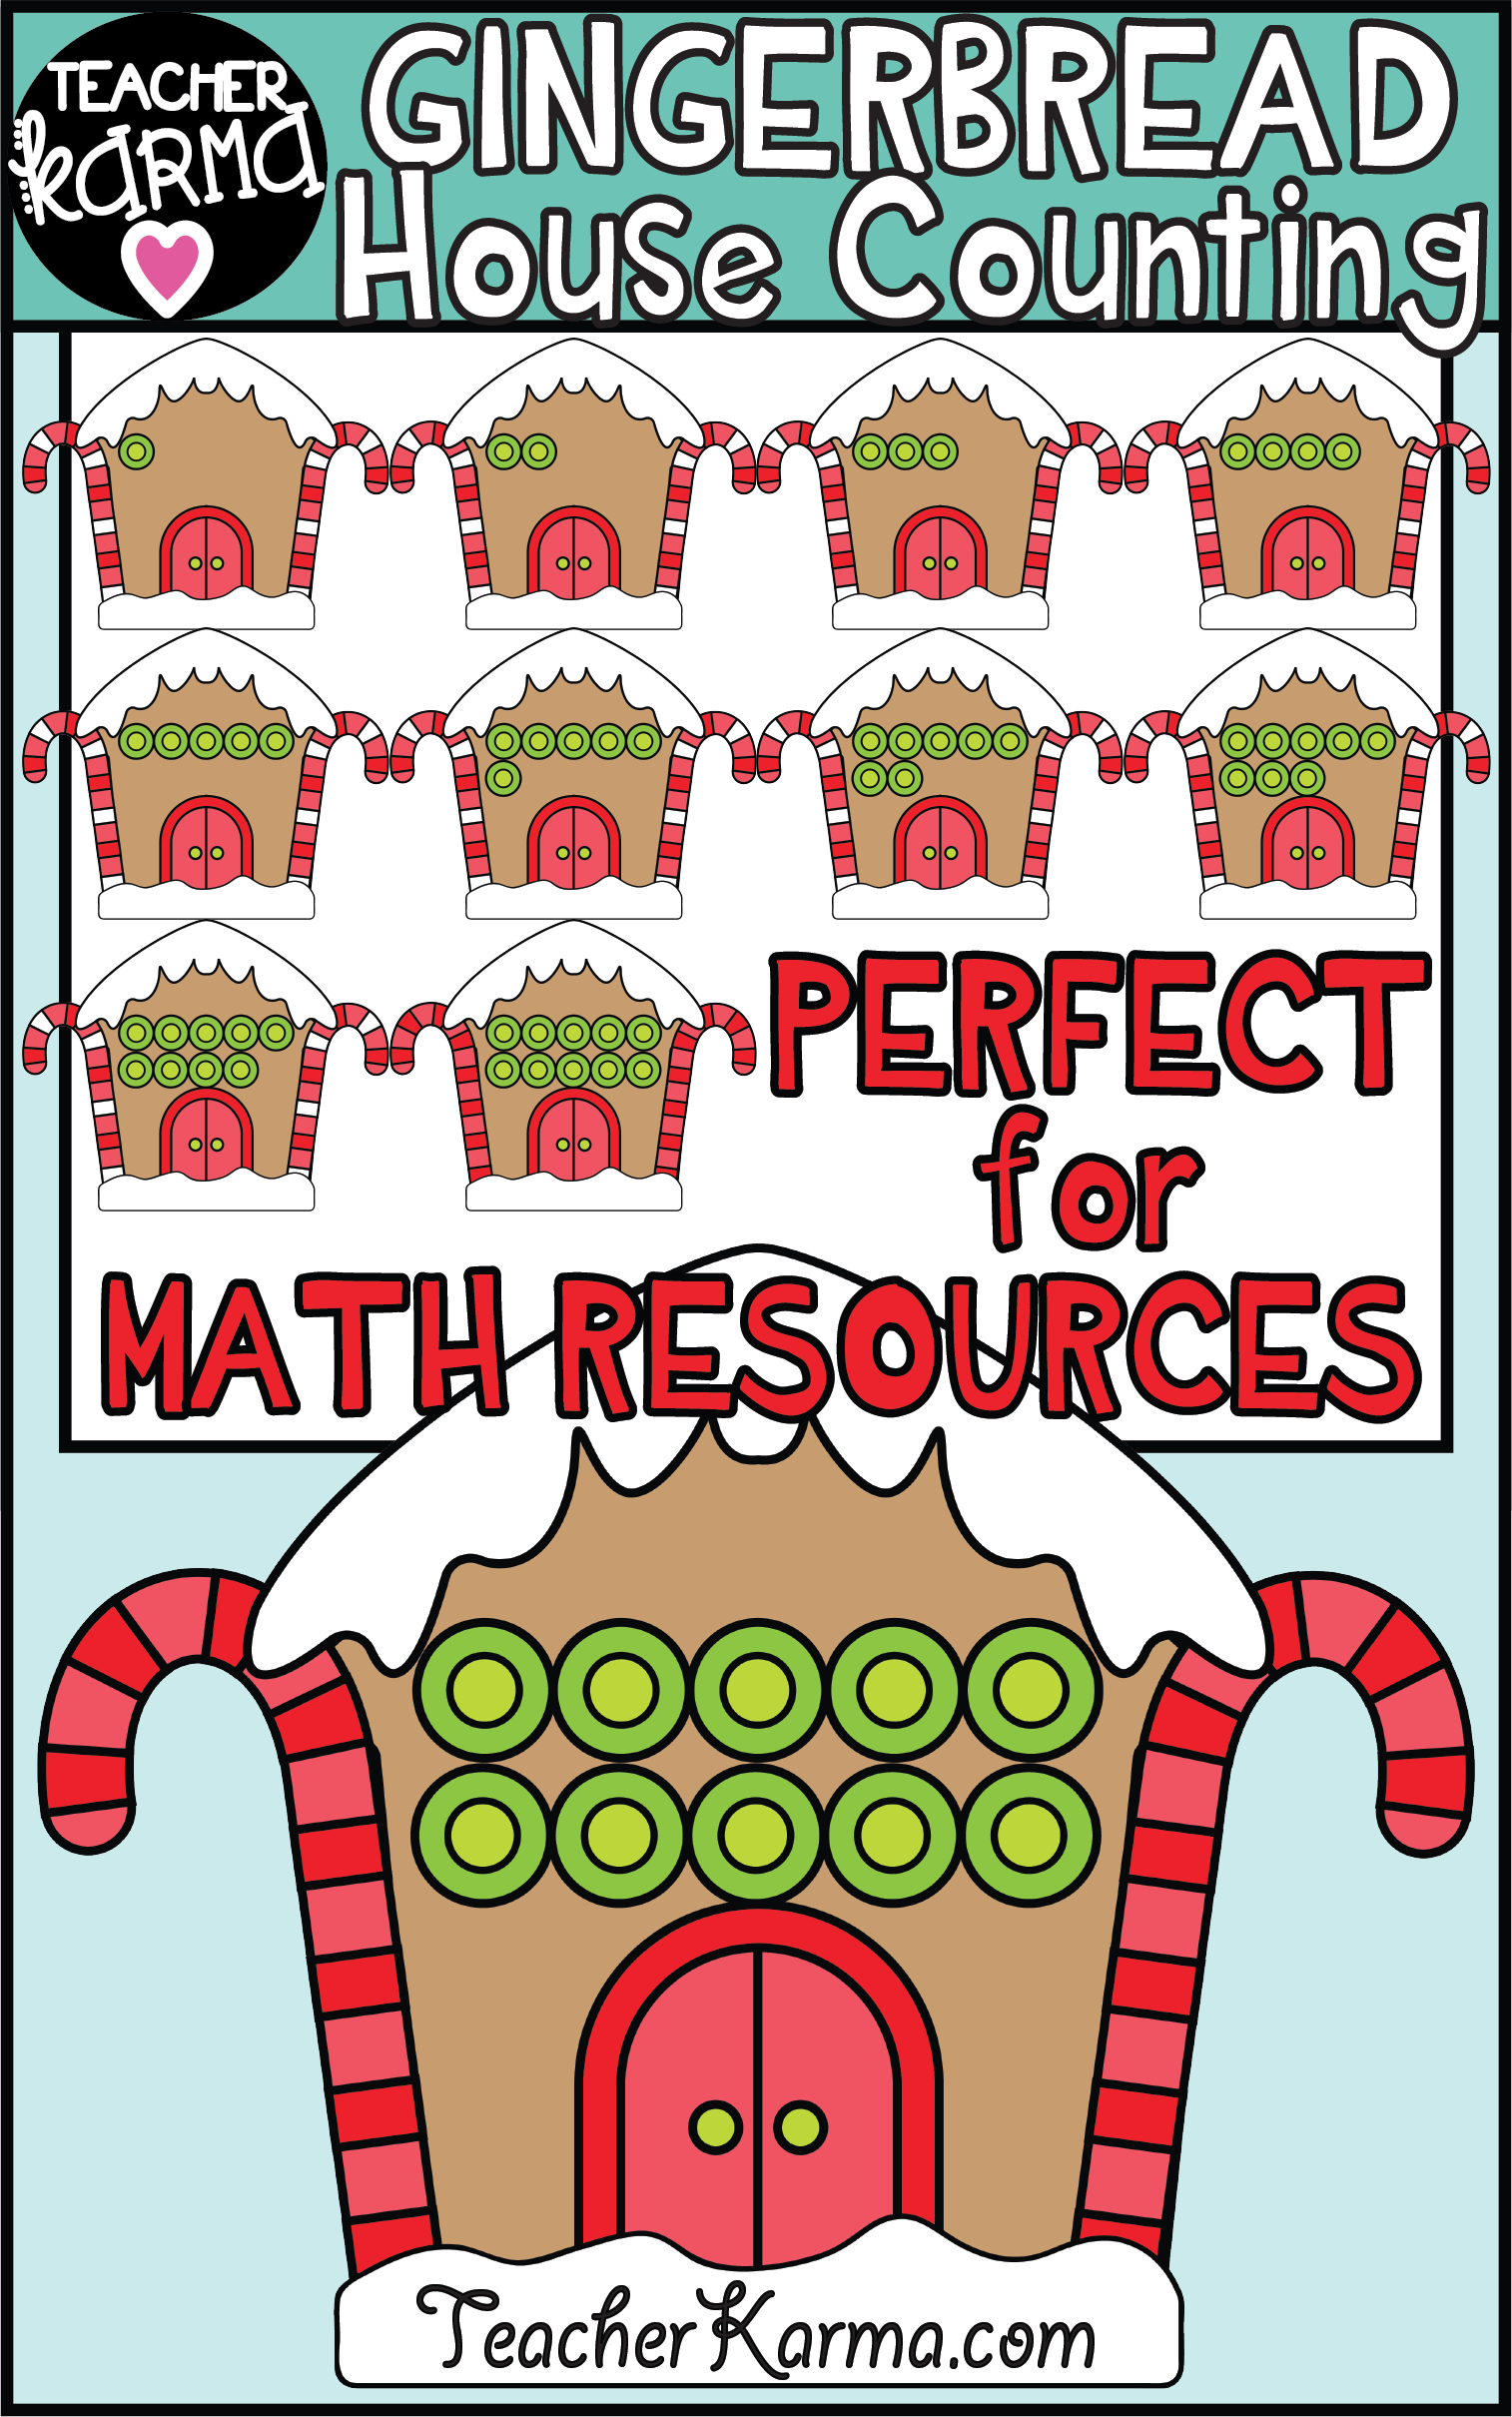 medium resolution of gingerbread house math clipart for counting and number sense these graphics are perfect for your math resources this christmas and holiday season